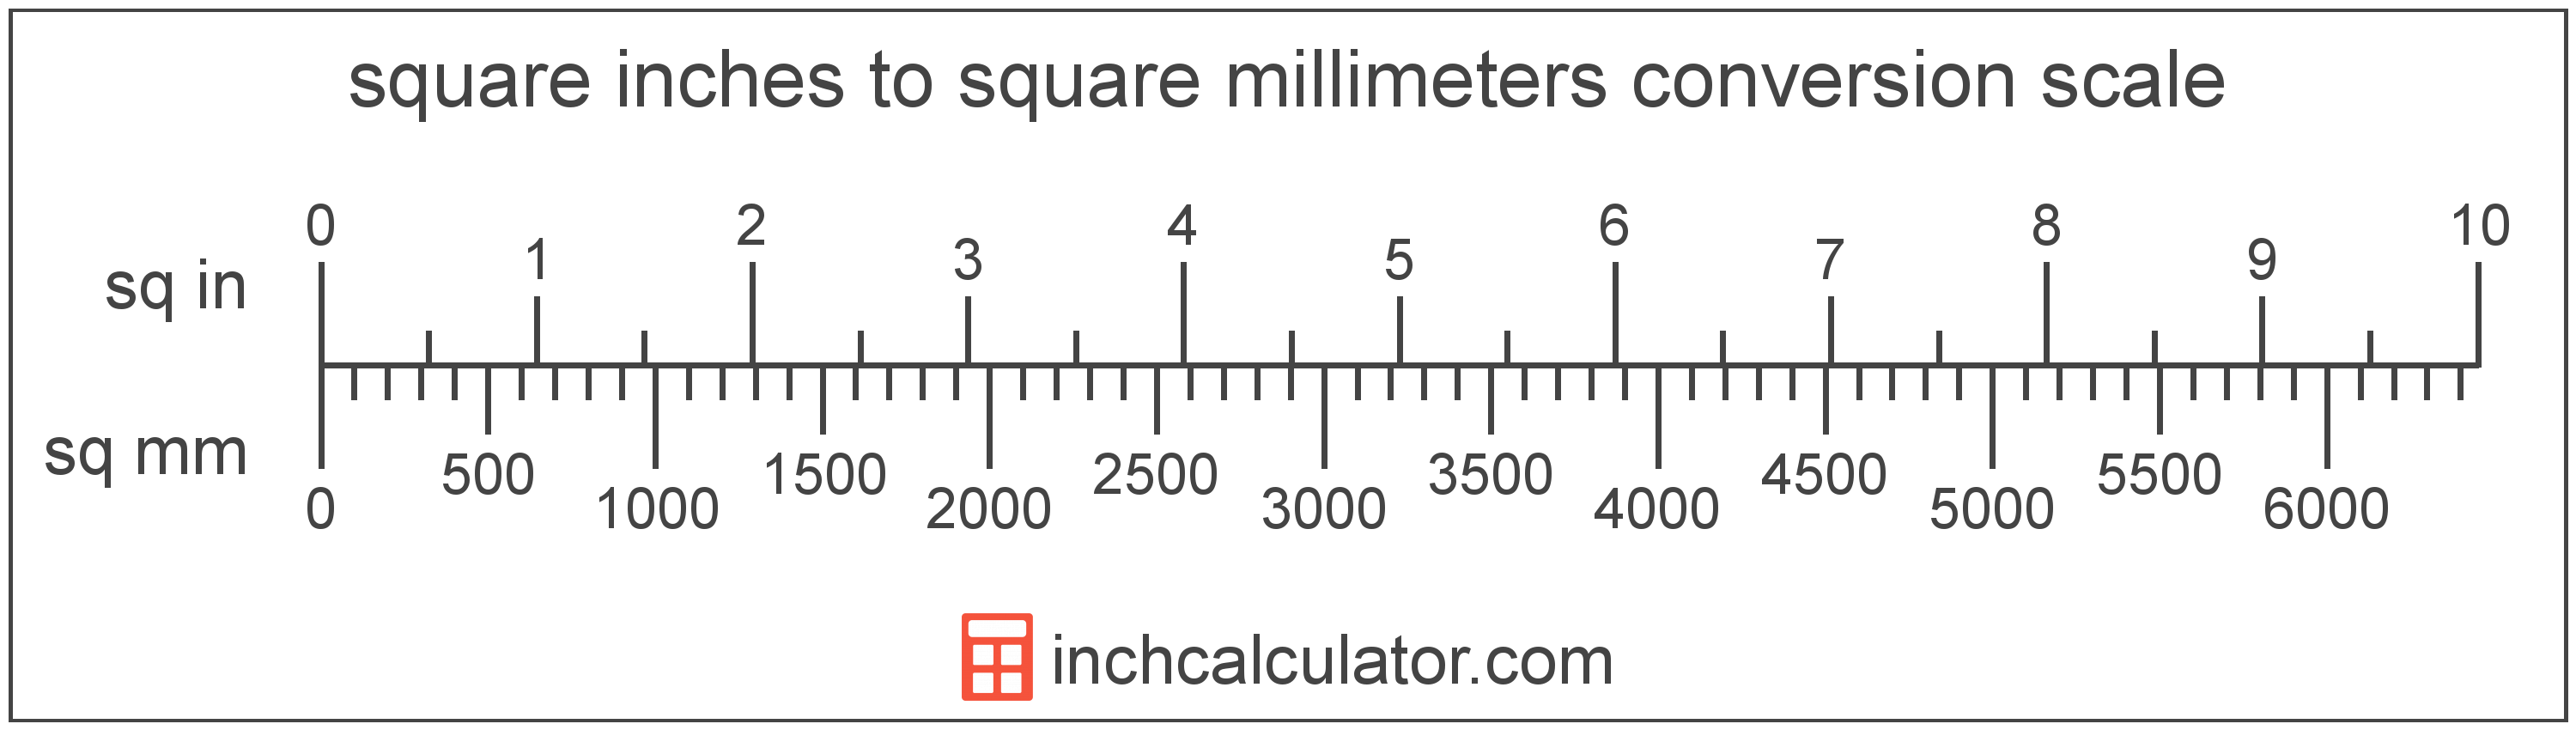 conversion scale showing square inches and equivalent square millimeters area values